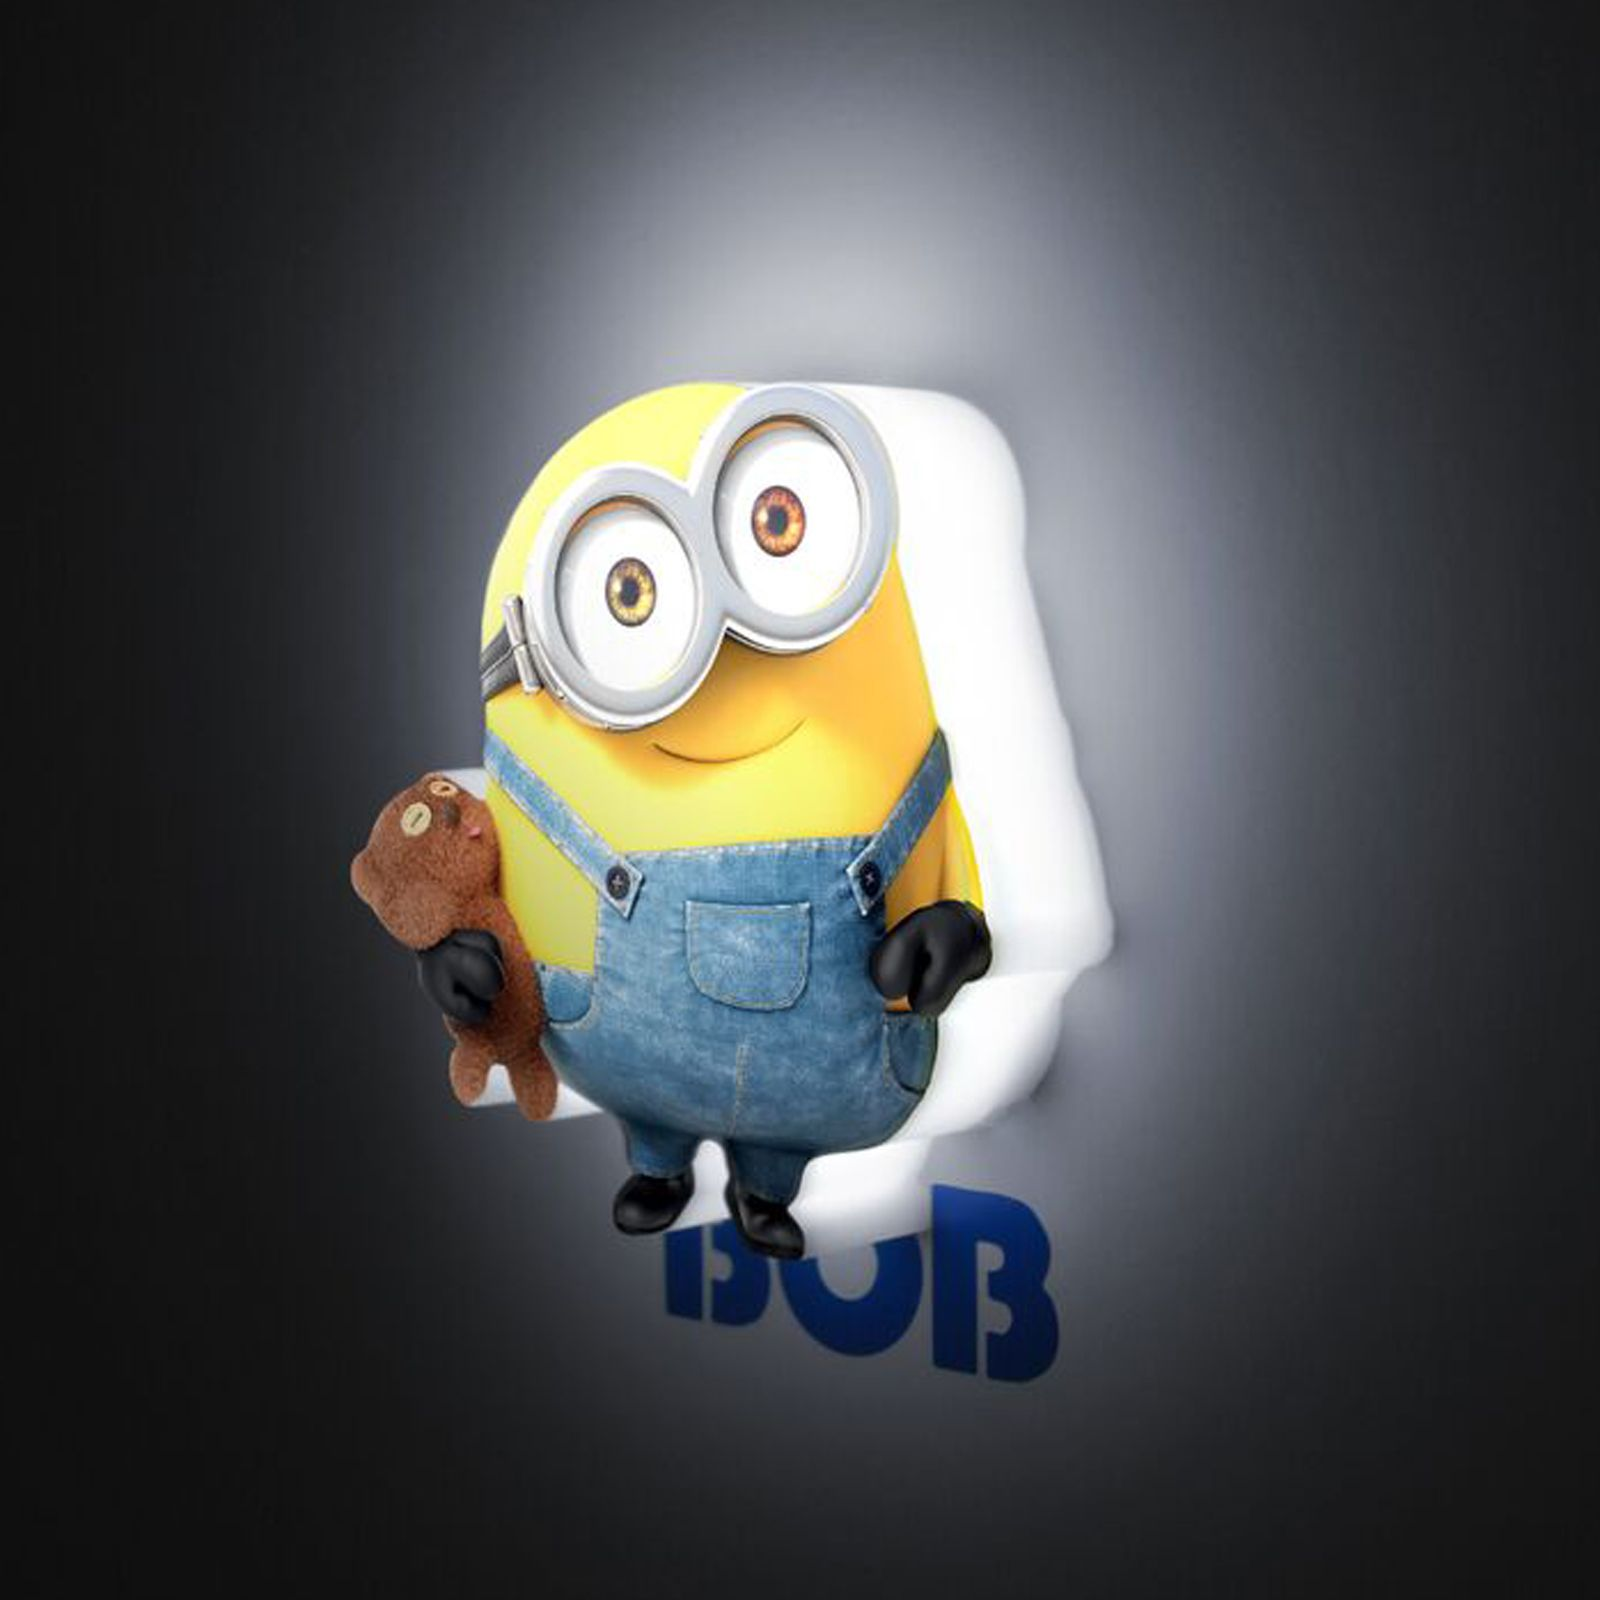 3d mini led wall lights kids bedroom lighting minions star wars paw 3d mini led wall lights kids bedroom lighting aloadofball Image collections